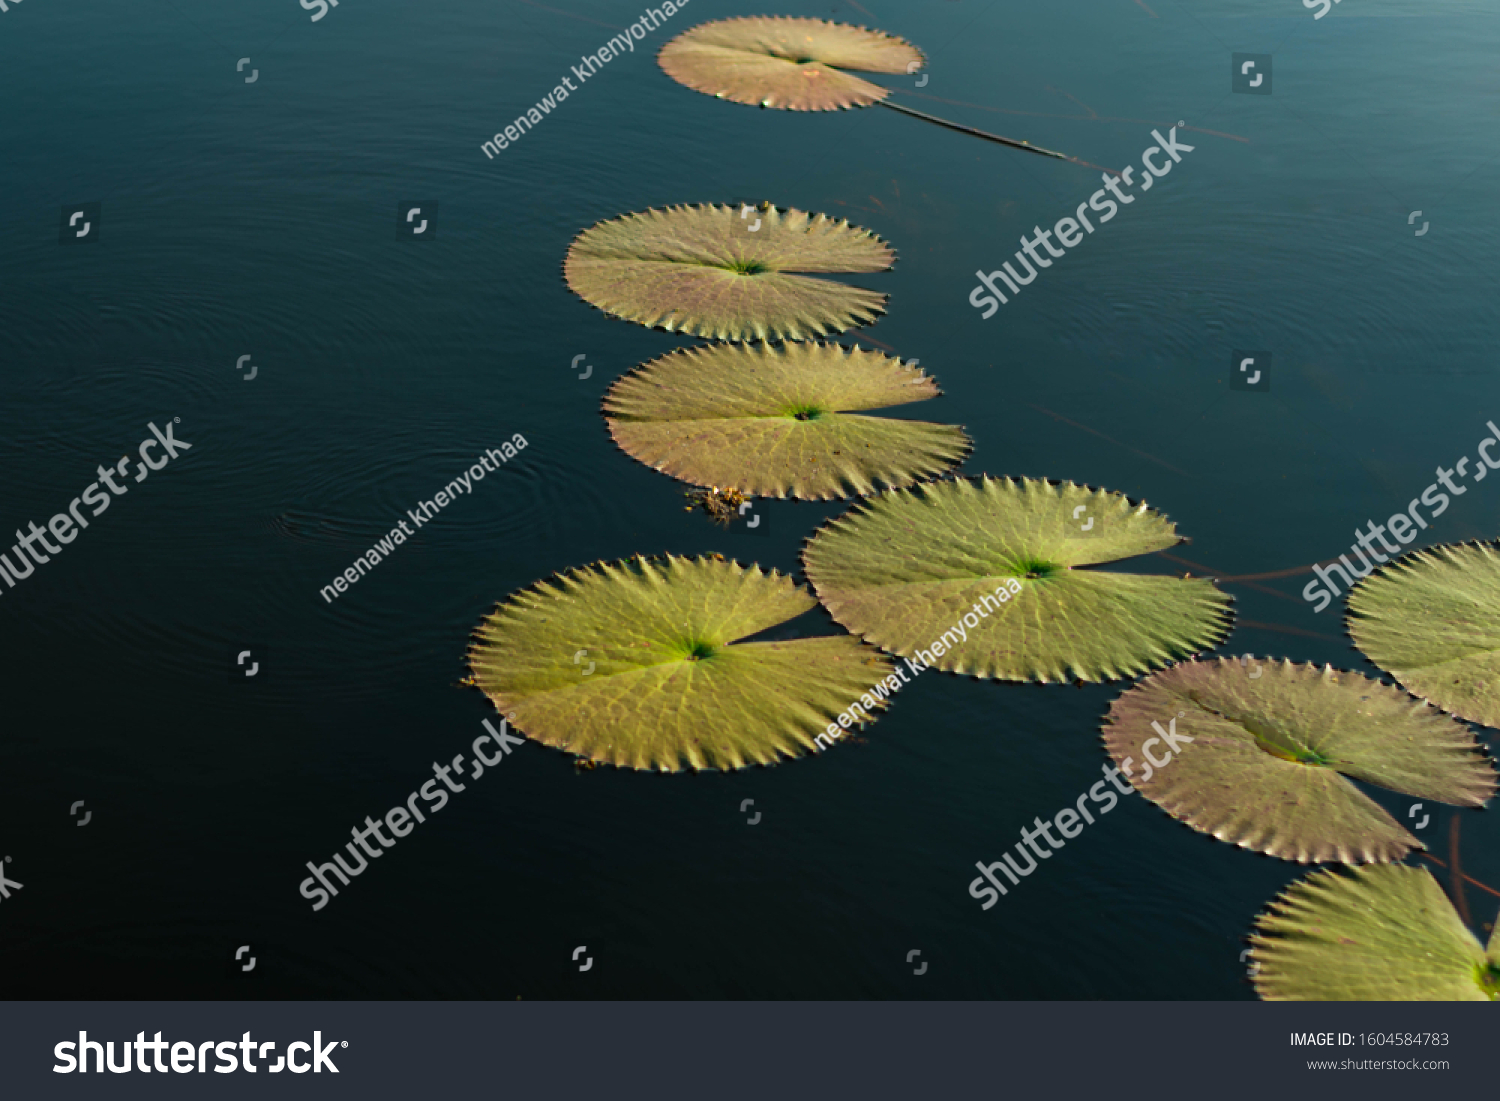 The green lotus leaf on the still water and afternoon sun #1604584783